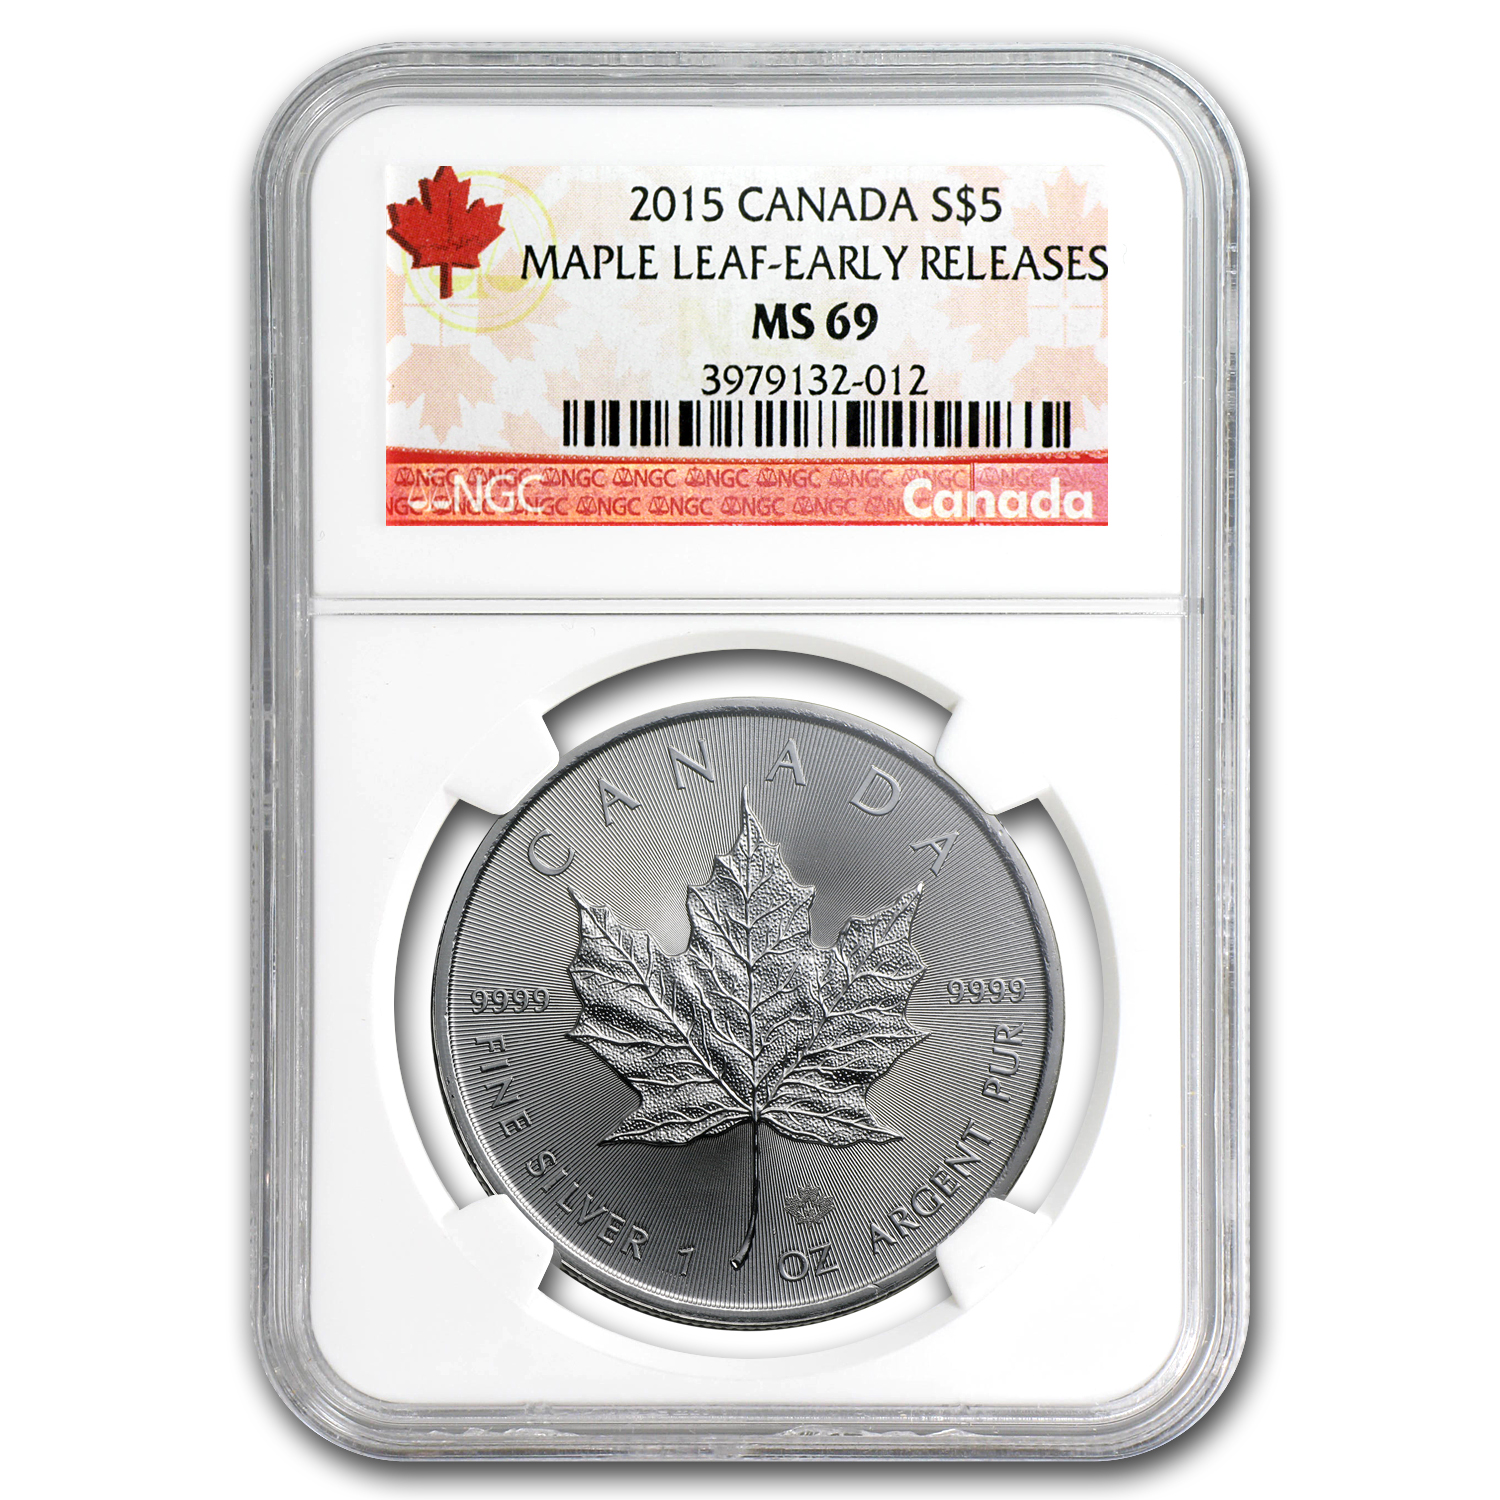 2015 Canada 1 oz Silver Maple Leaf MS-69 NGC (Early Release)